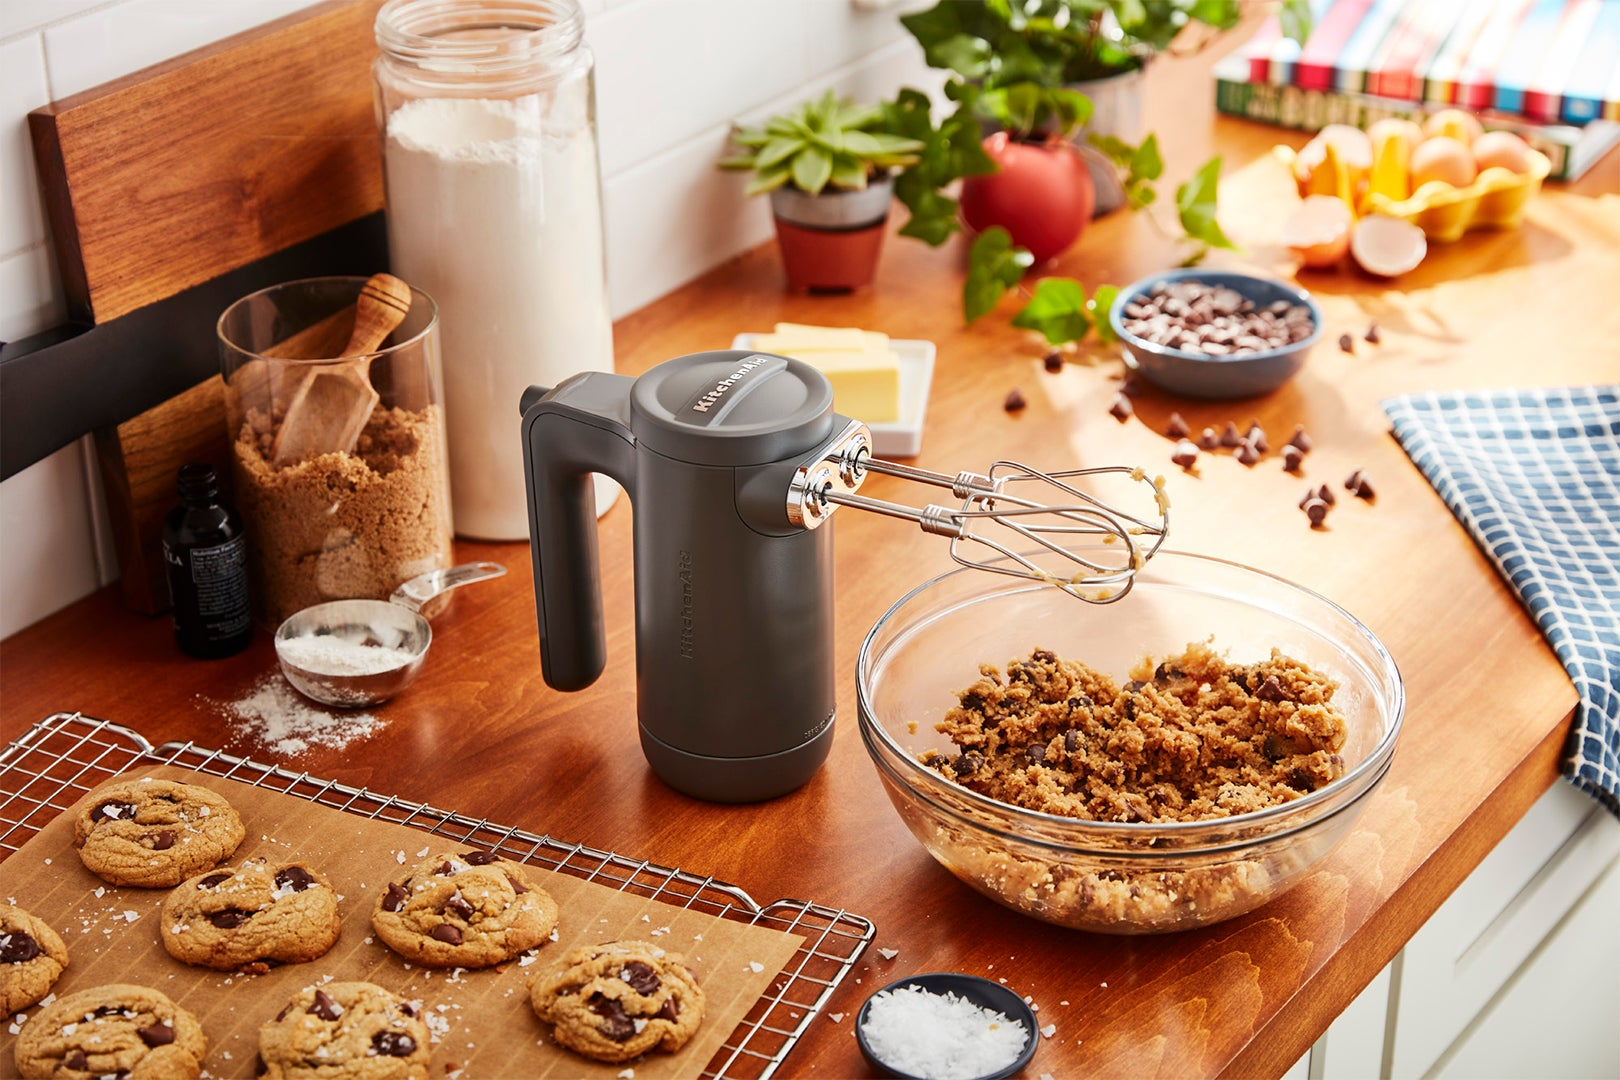 cordless mixer with cookie dough